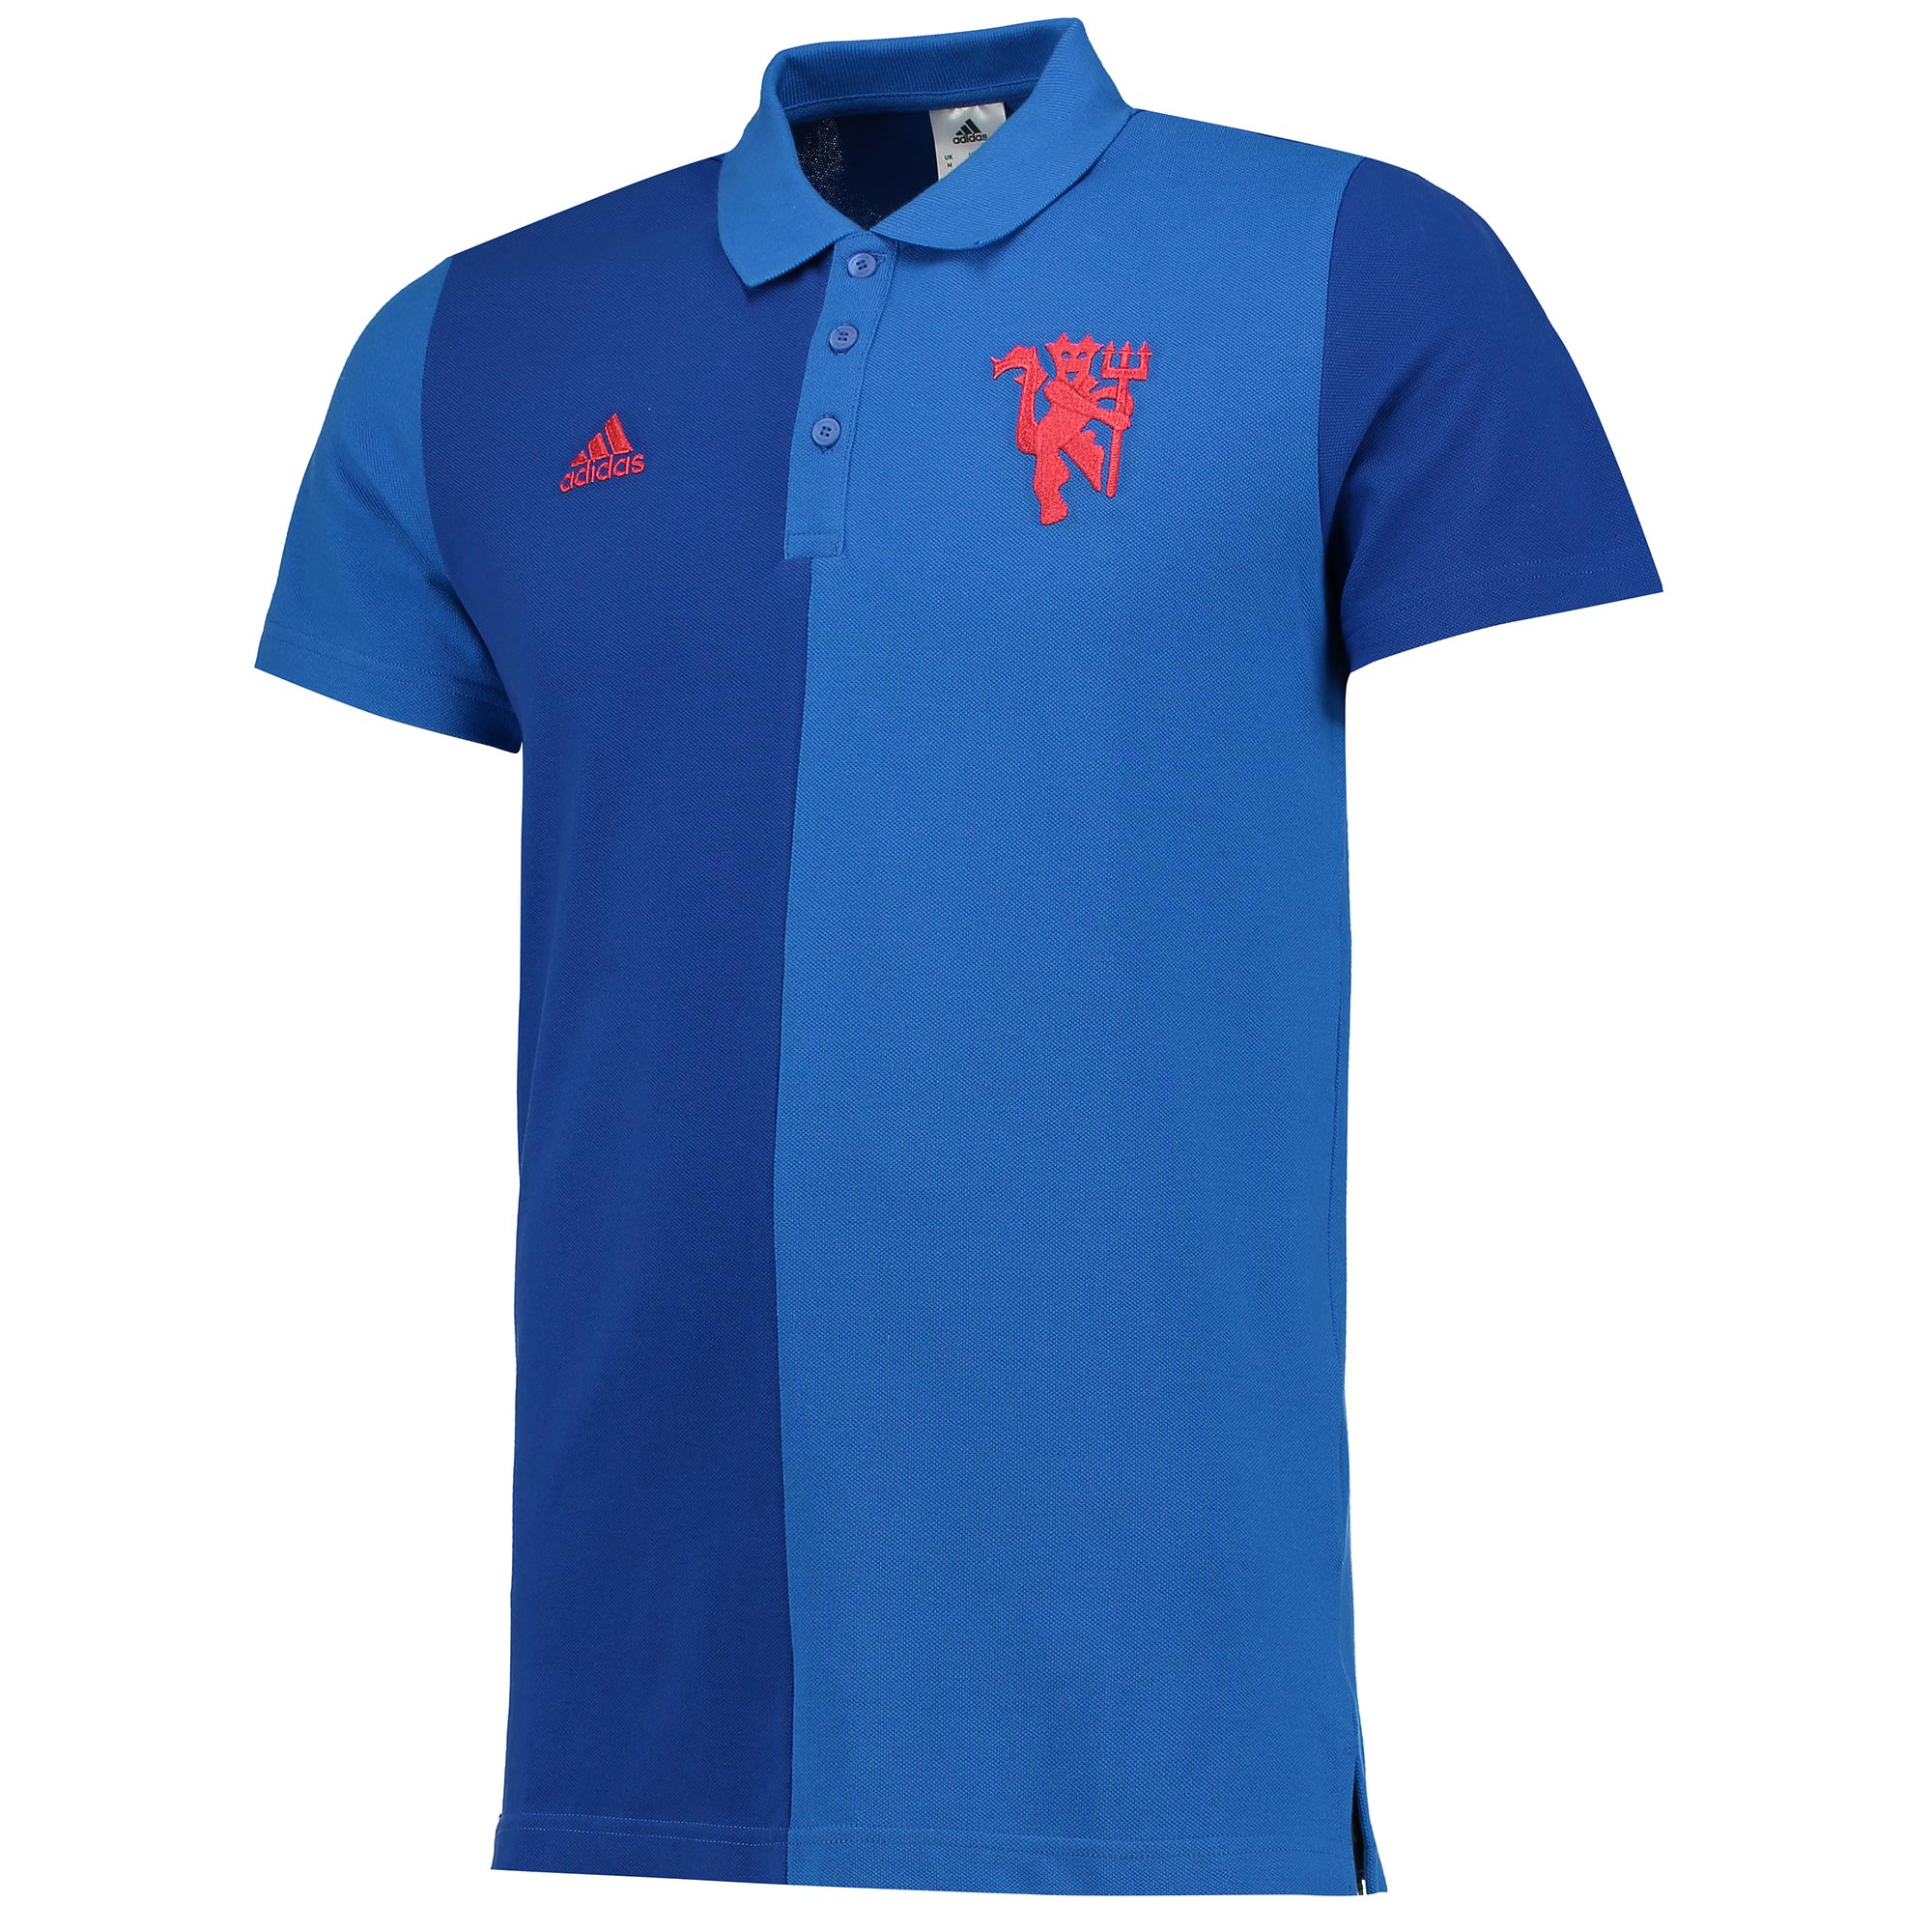 Manchester United Polo - Royal Blue